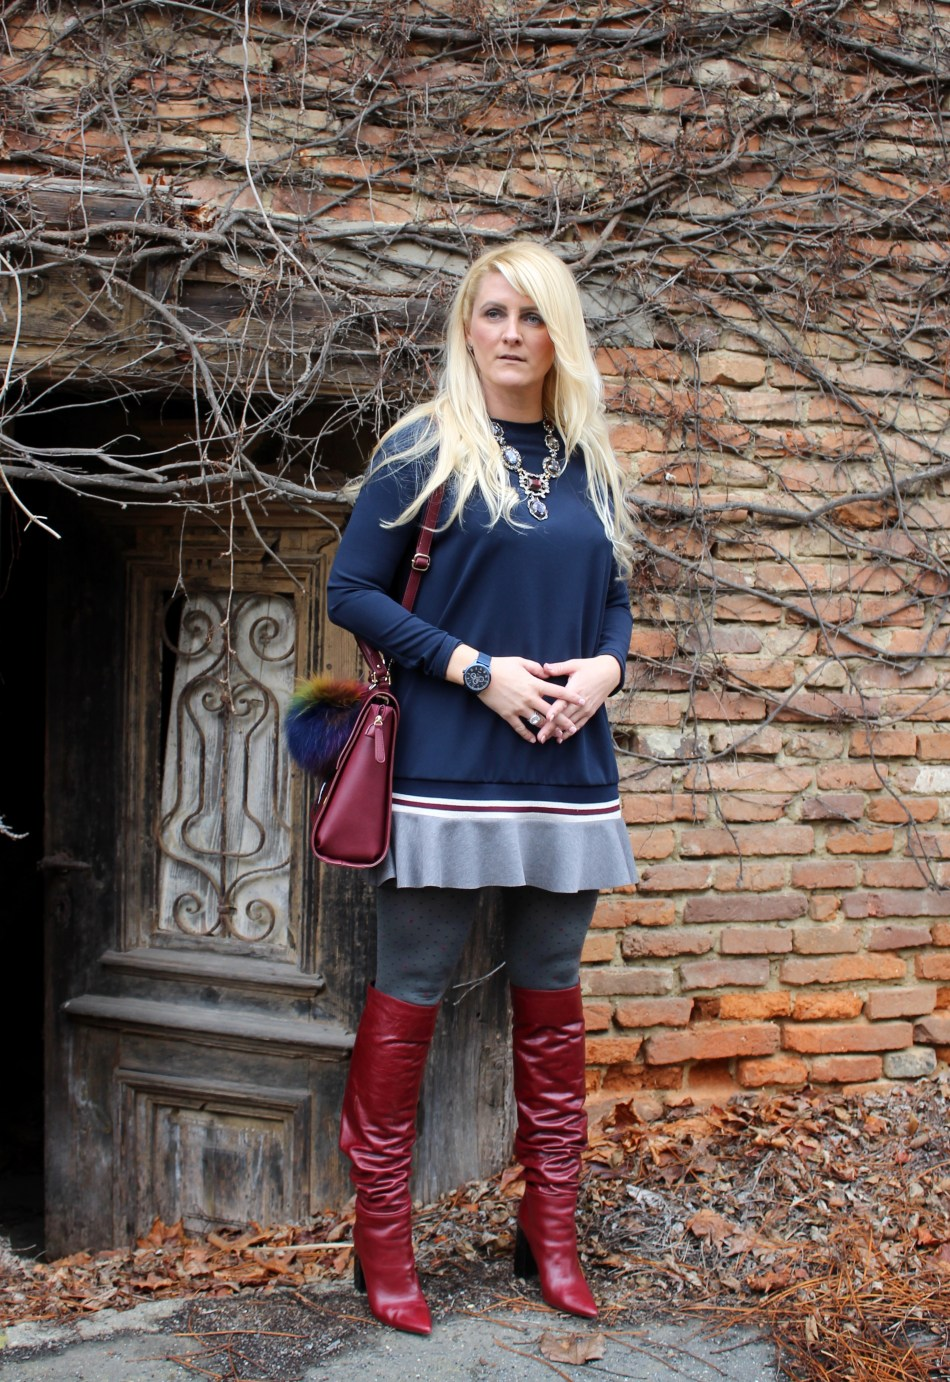 Dunkelrote-Boots-Overknees-Mini-Dress-carrieslifestyle-Tamara-Prutsch